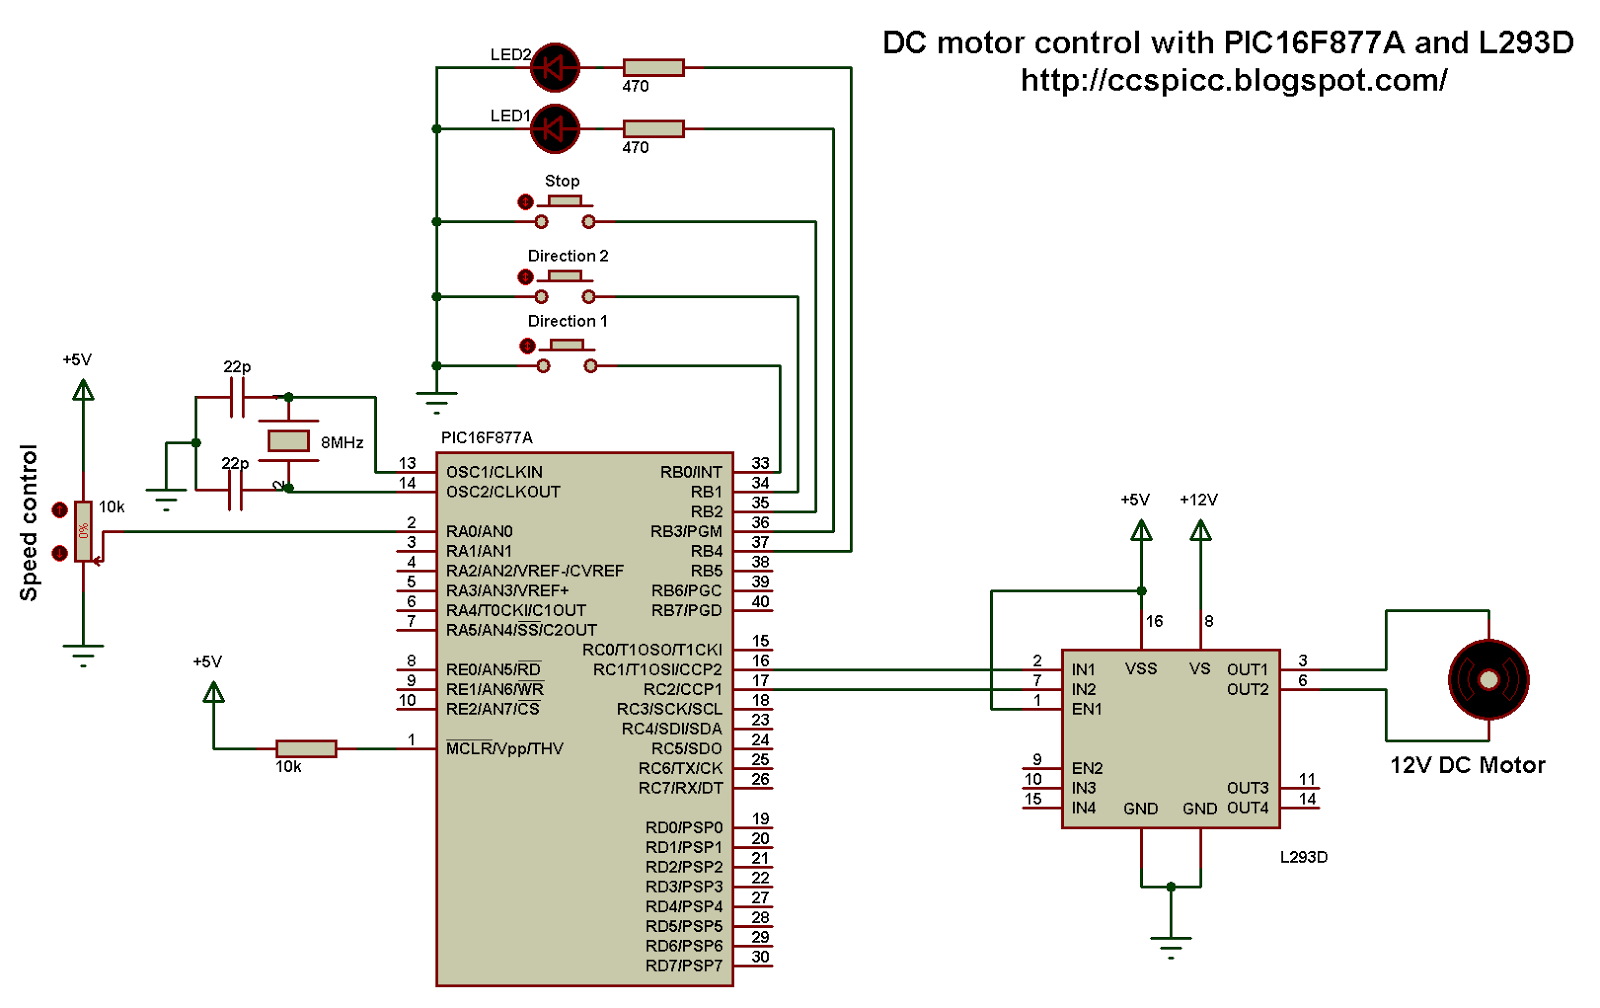 dc motor control with pic16f877a and l293d proteus